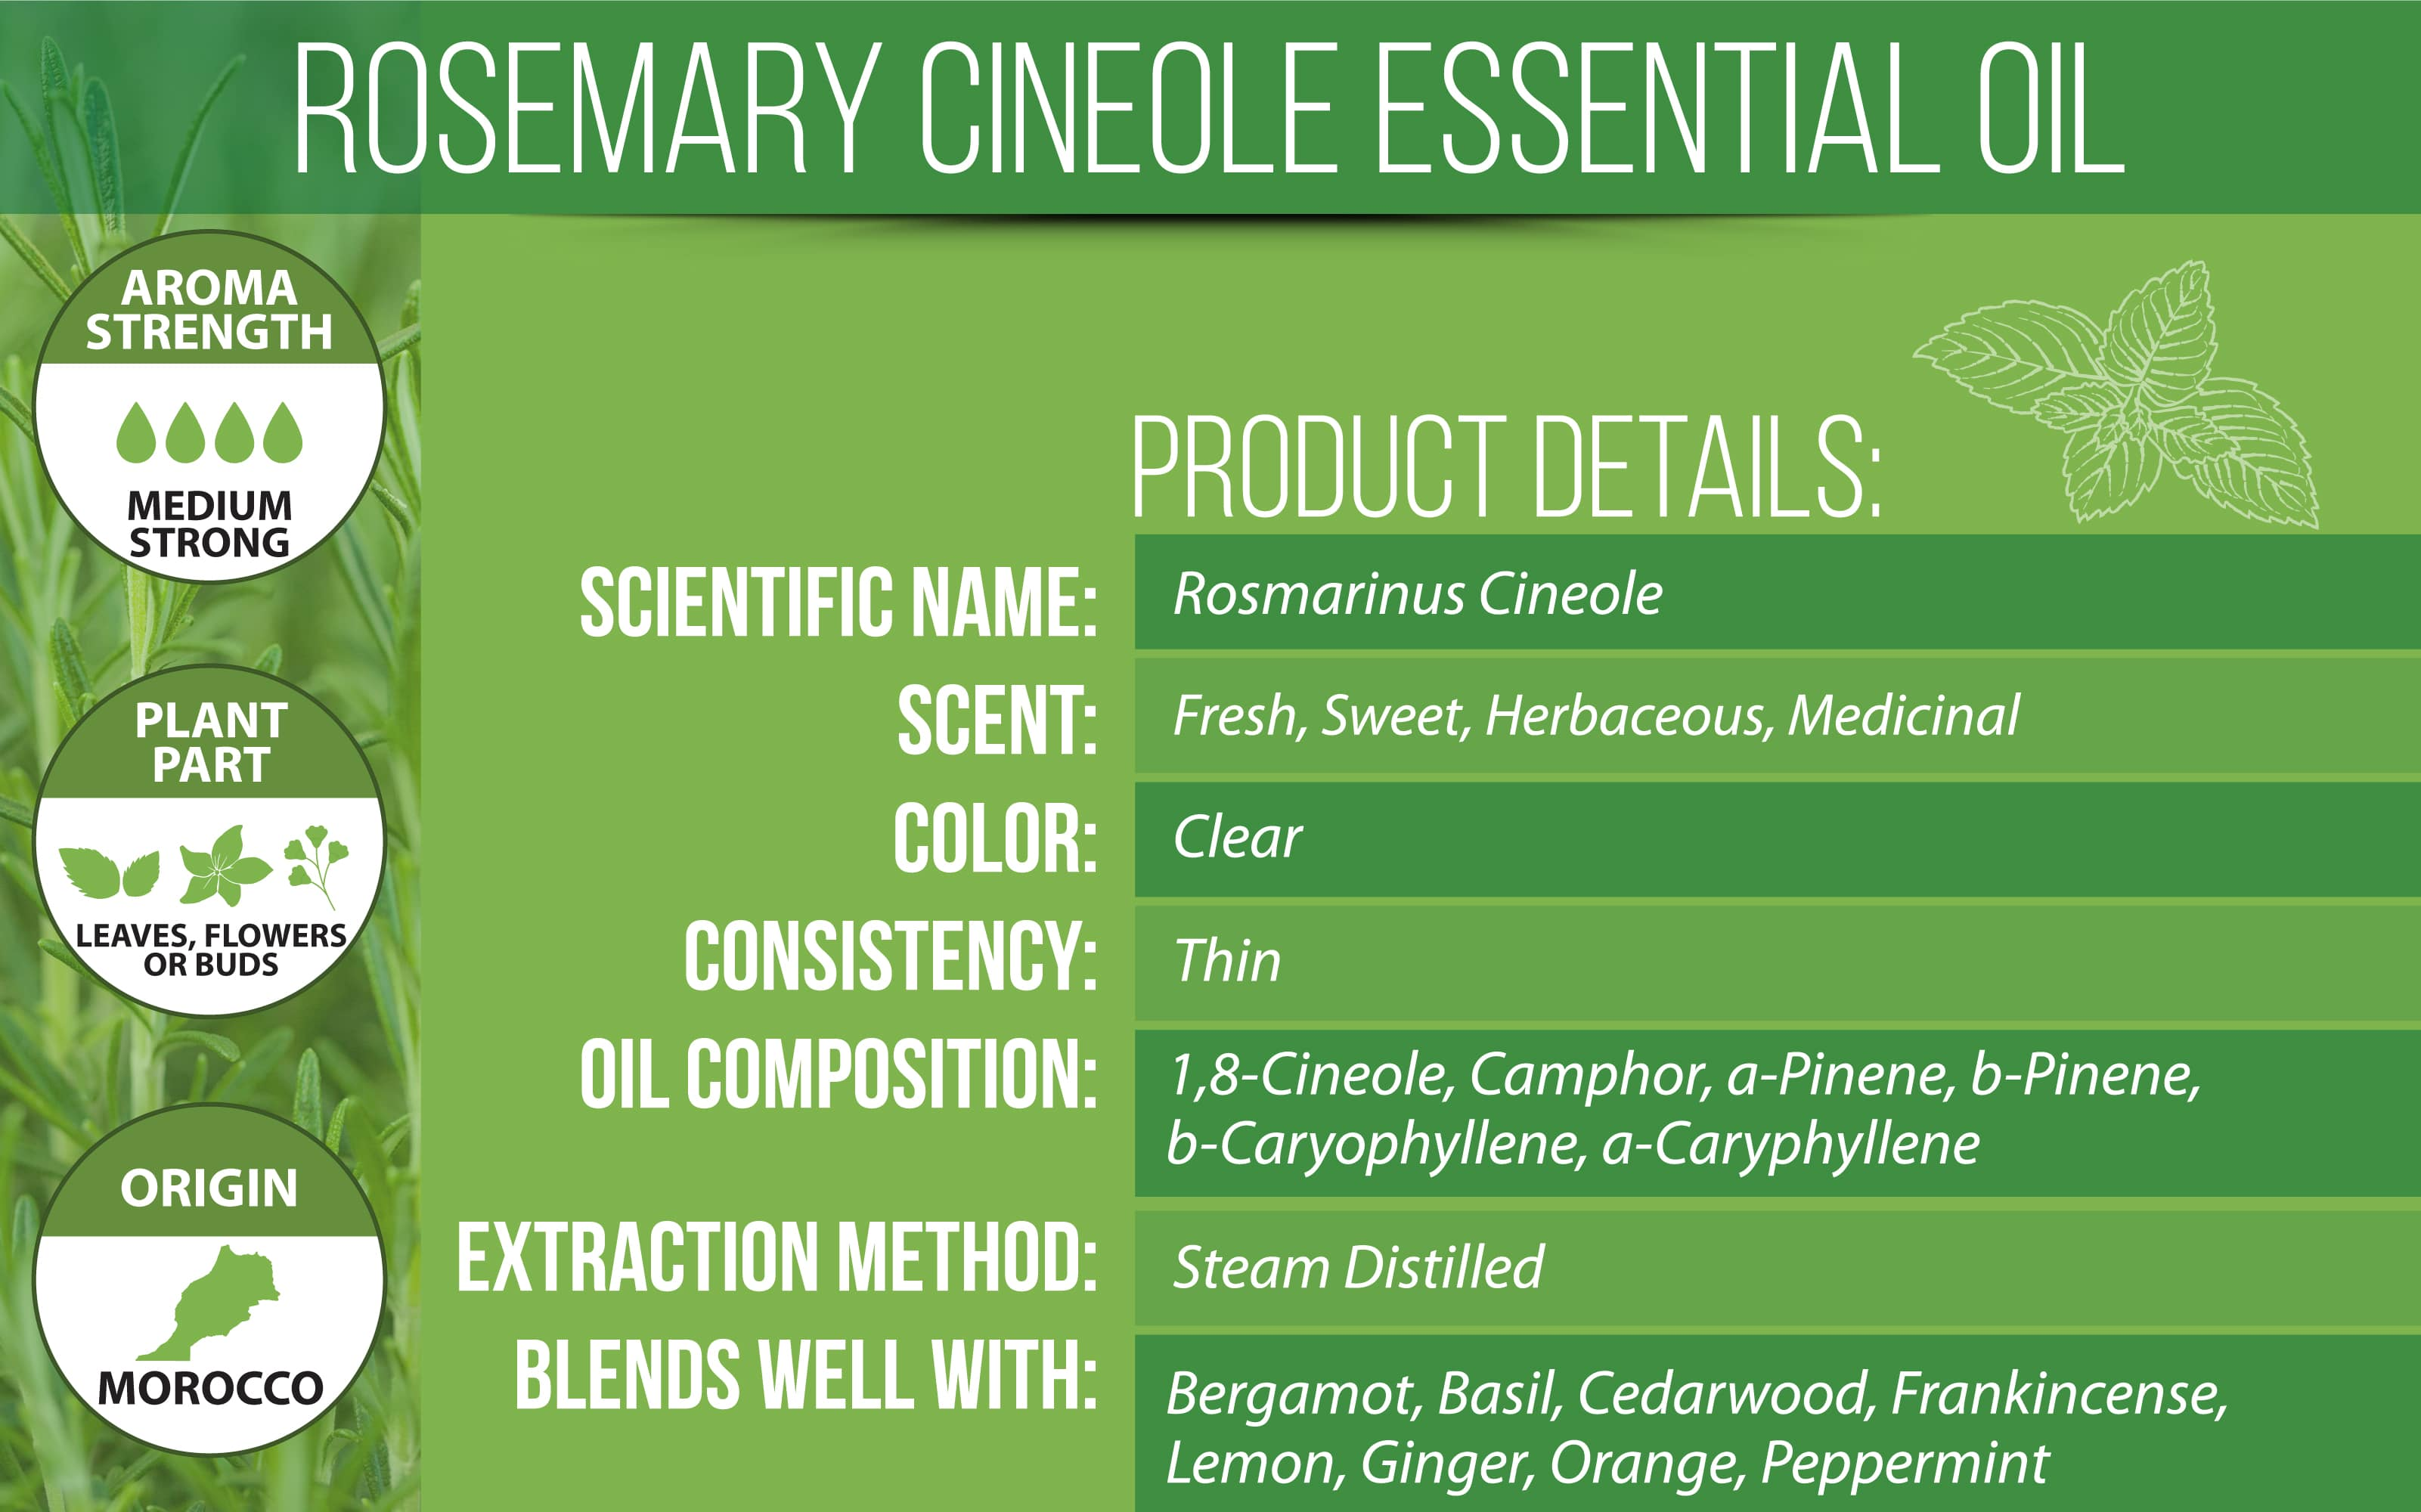 Rosemary Essential Oil Cineole Product Details